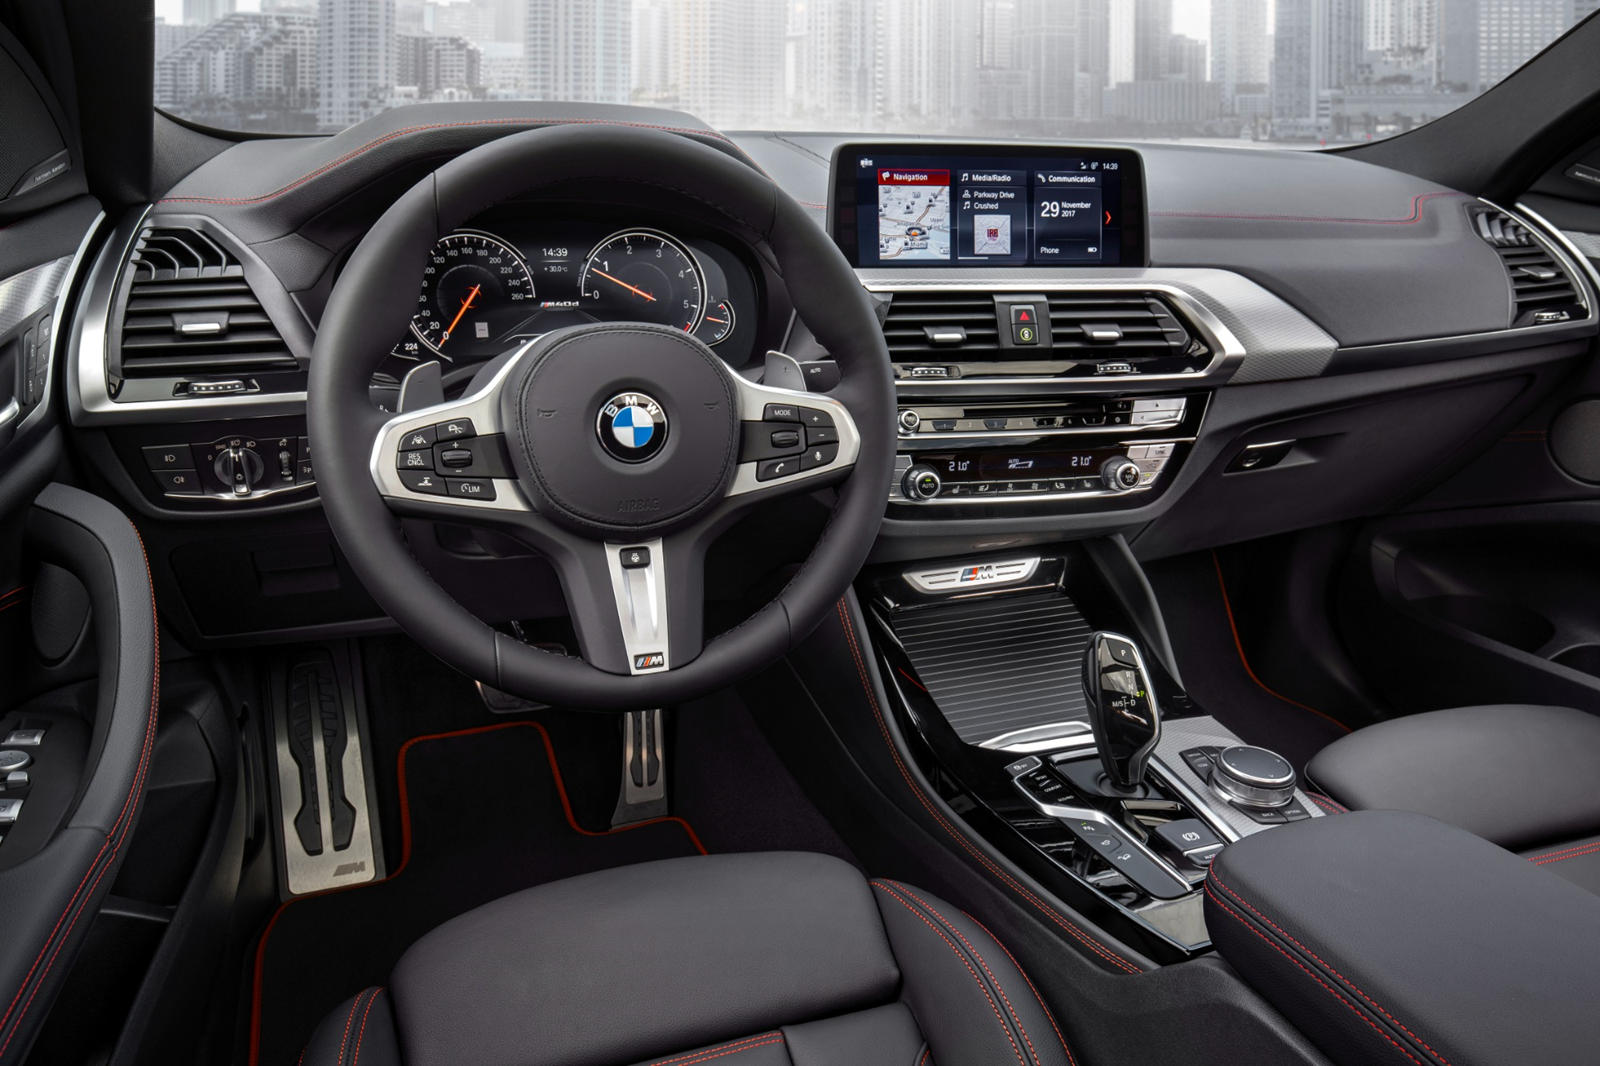 2020 BMW X6 SUV steering